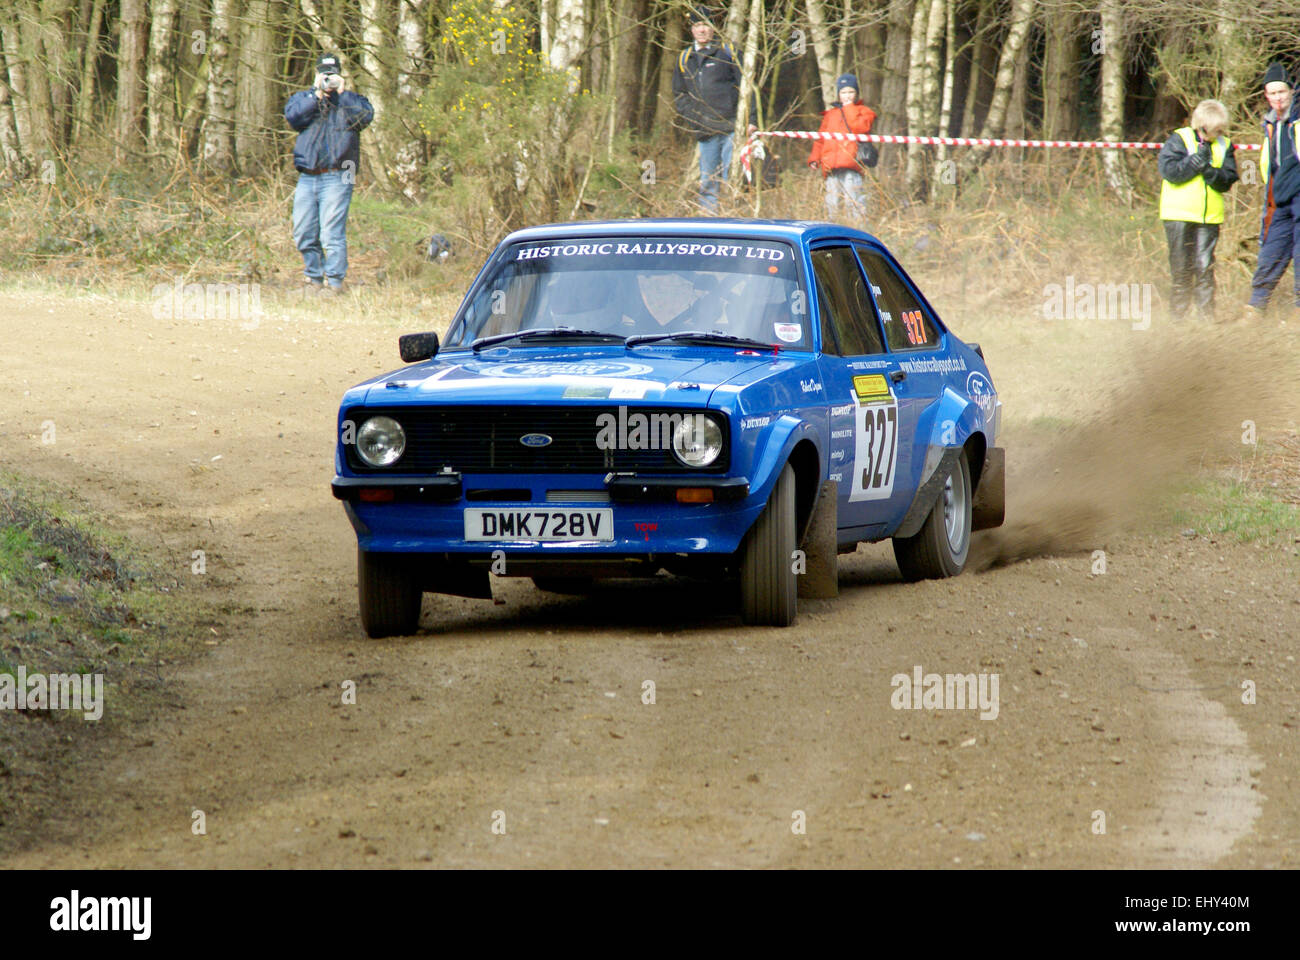 Ford Escort MK2 Rally Car Stock Photo, Royalty Free Image ...